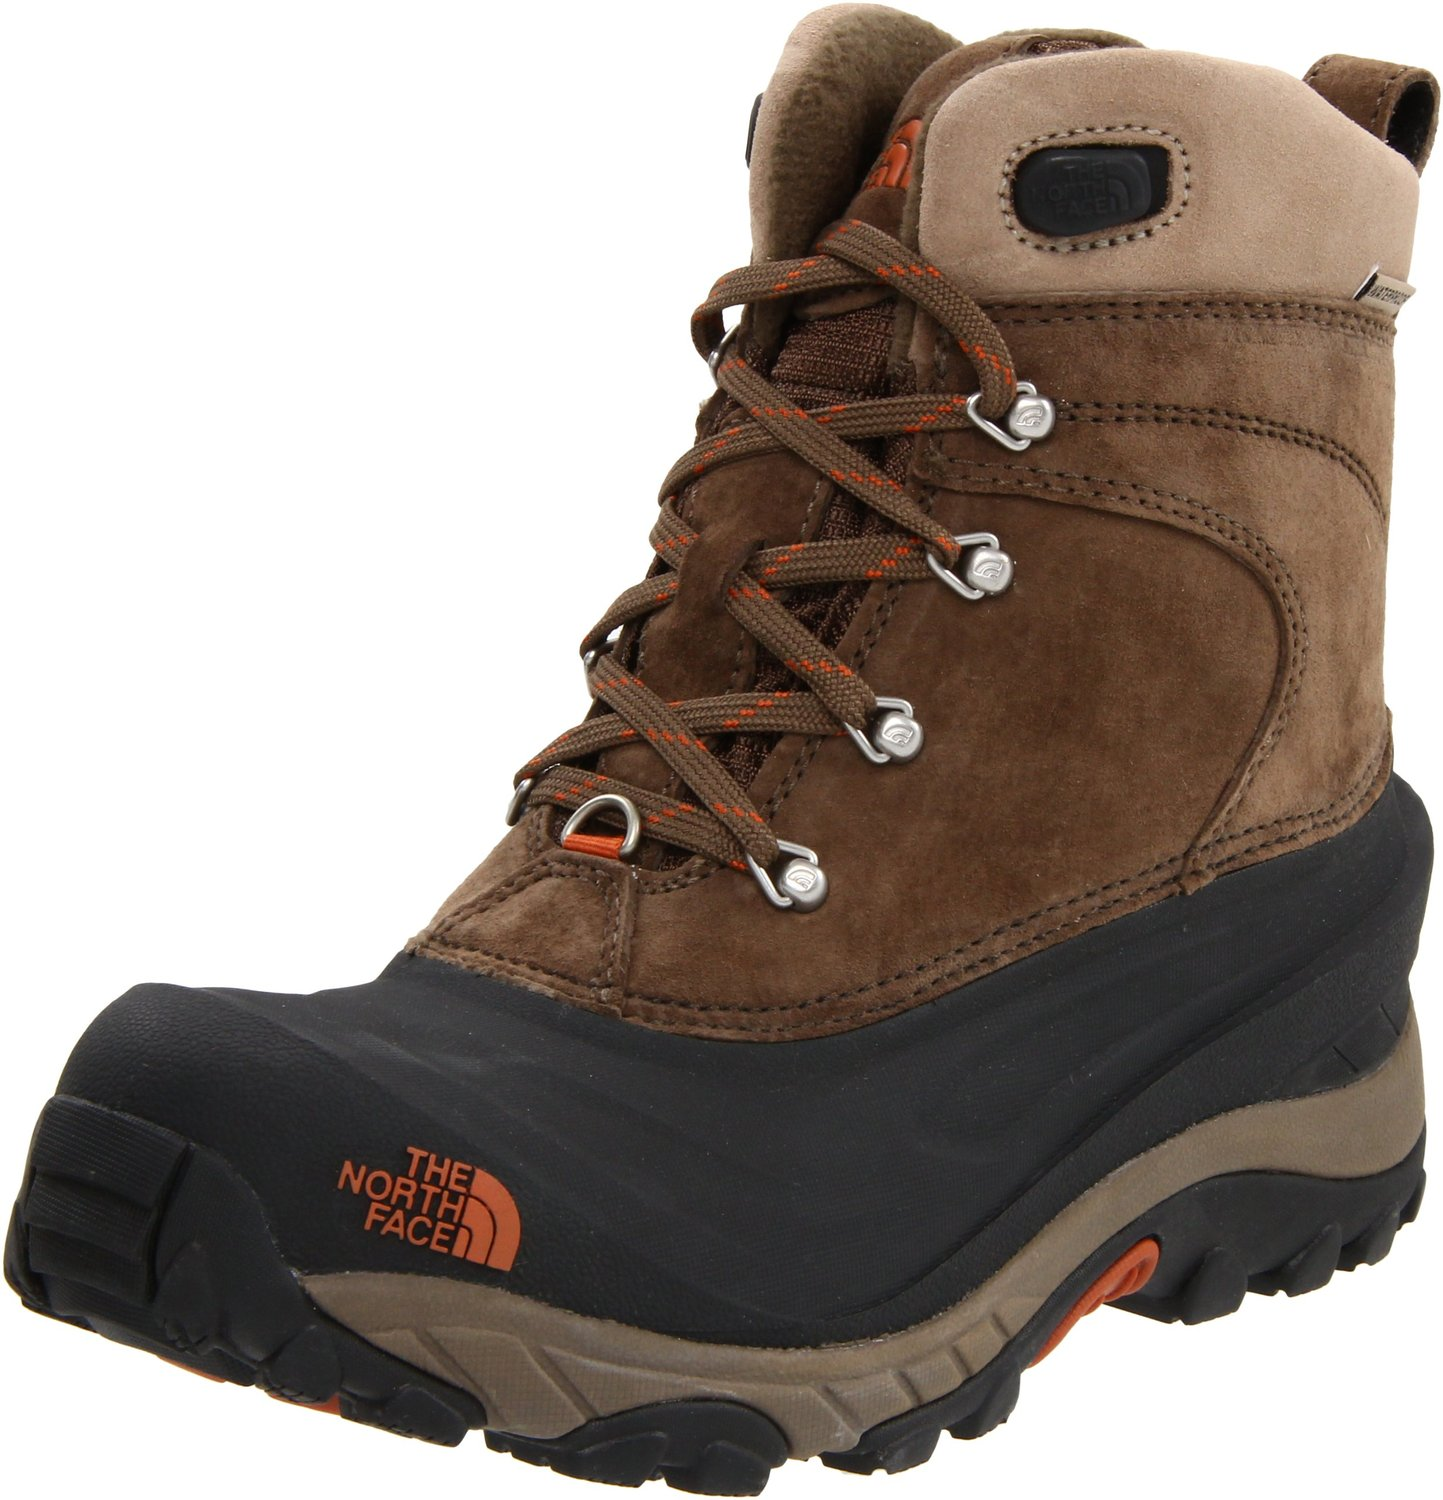 7ed08477c24 Cheap North Face Chilkat Ii, find North Face Chilkat Ii deals on ...